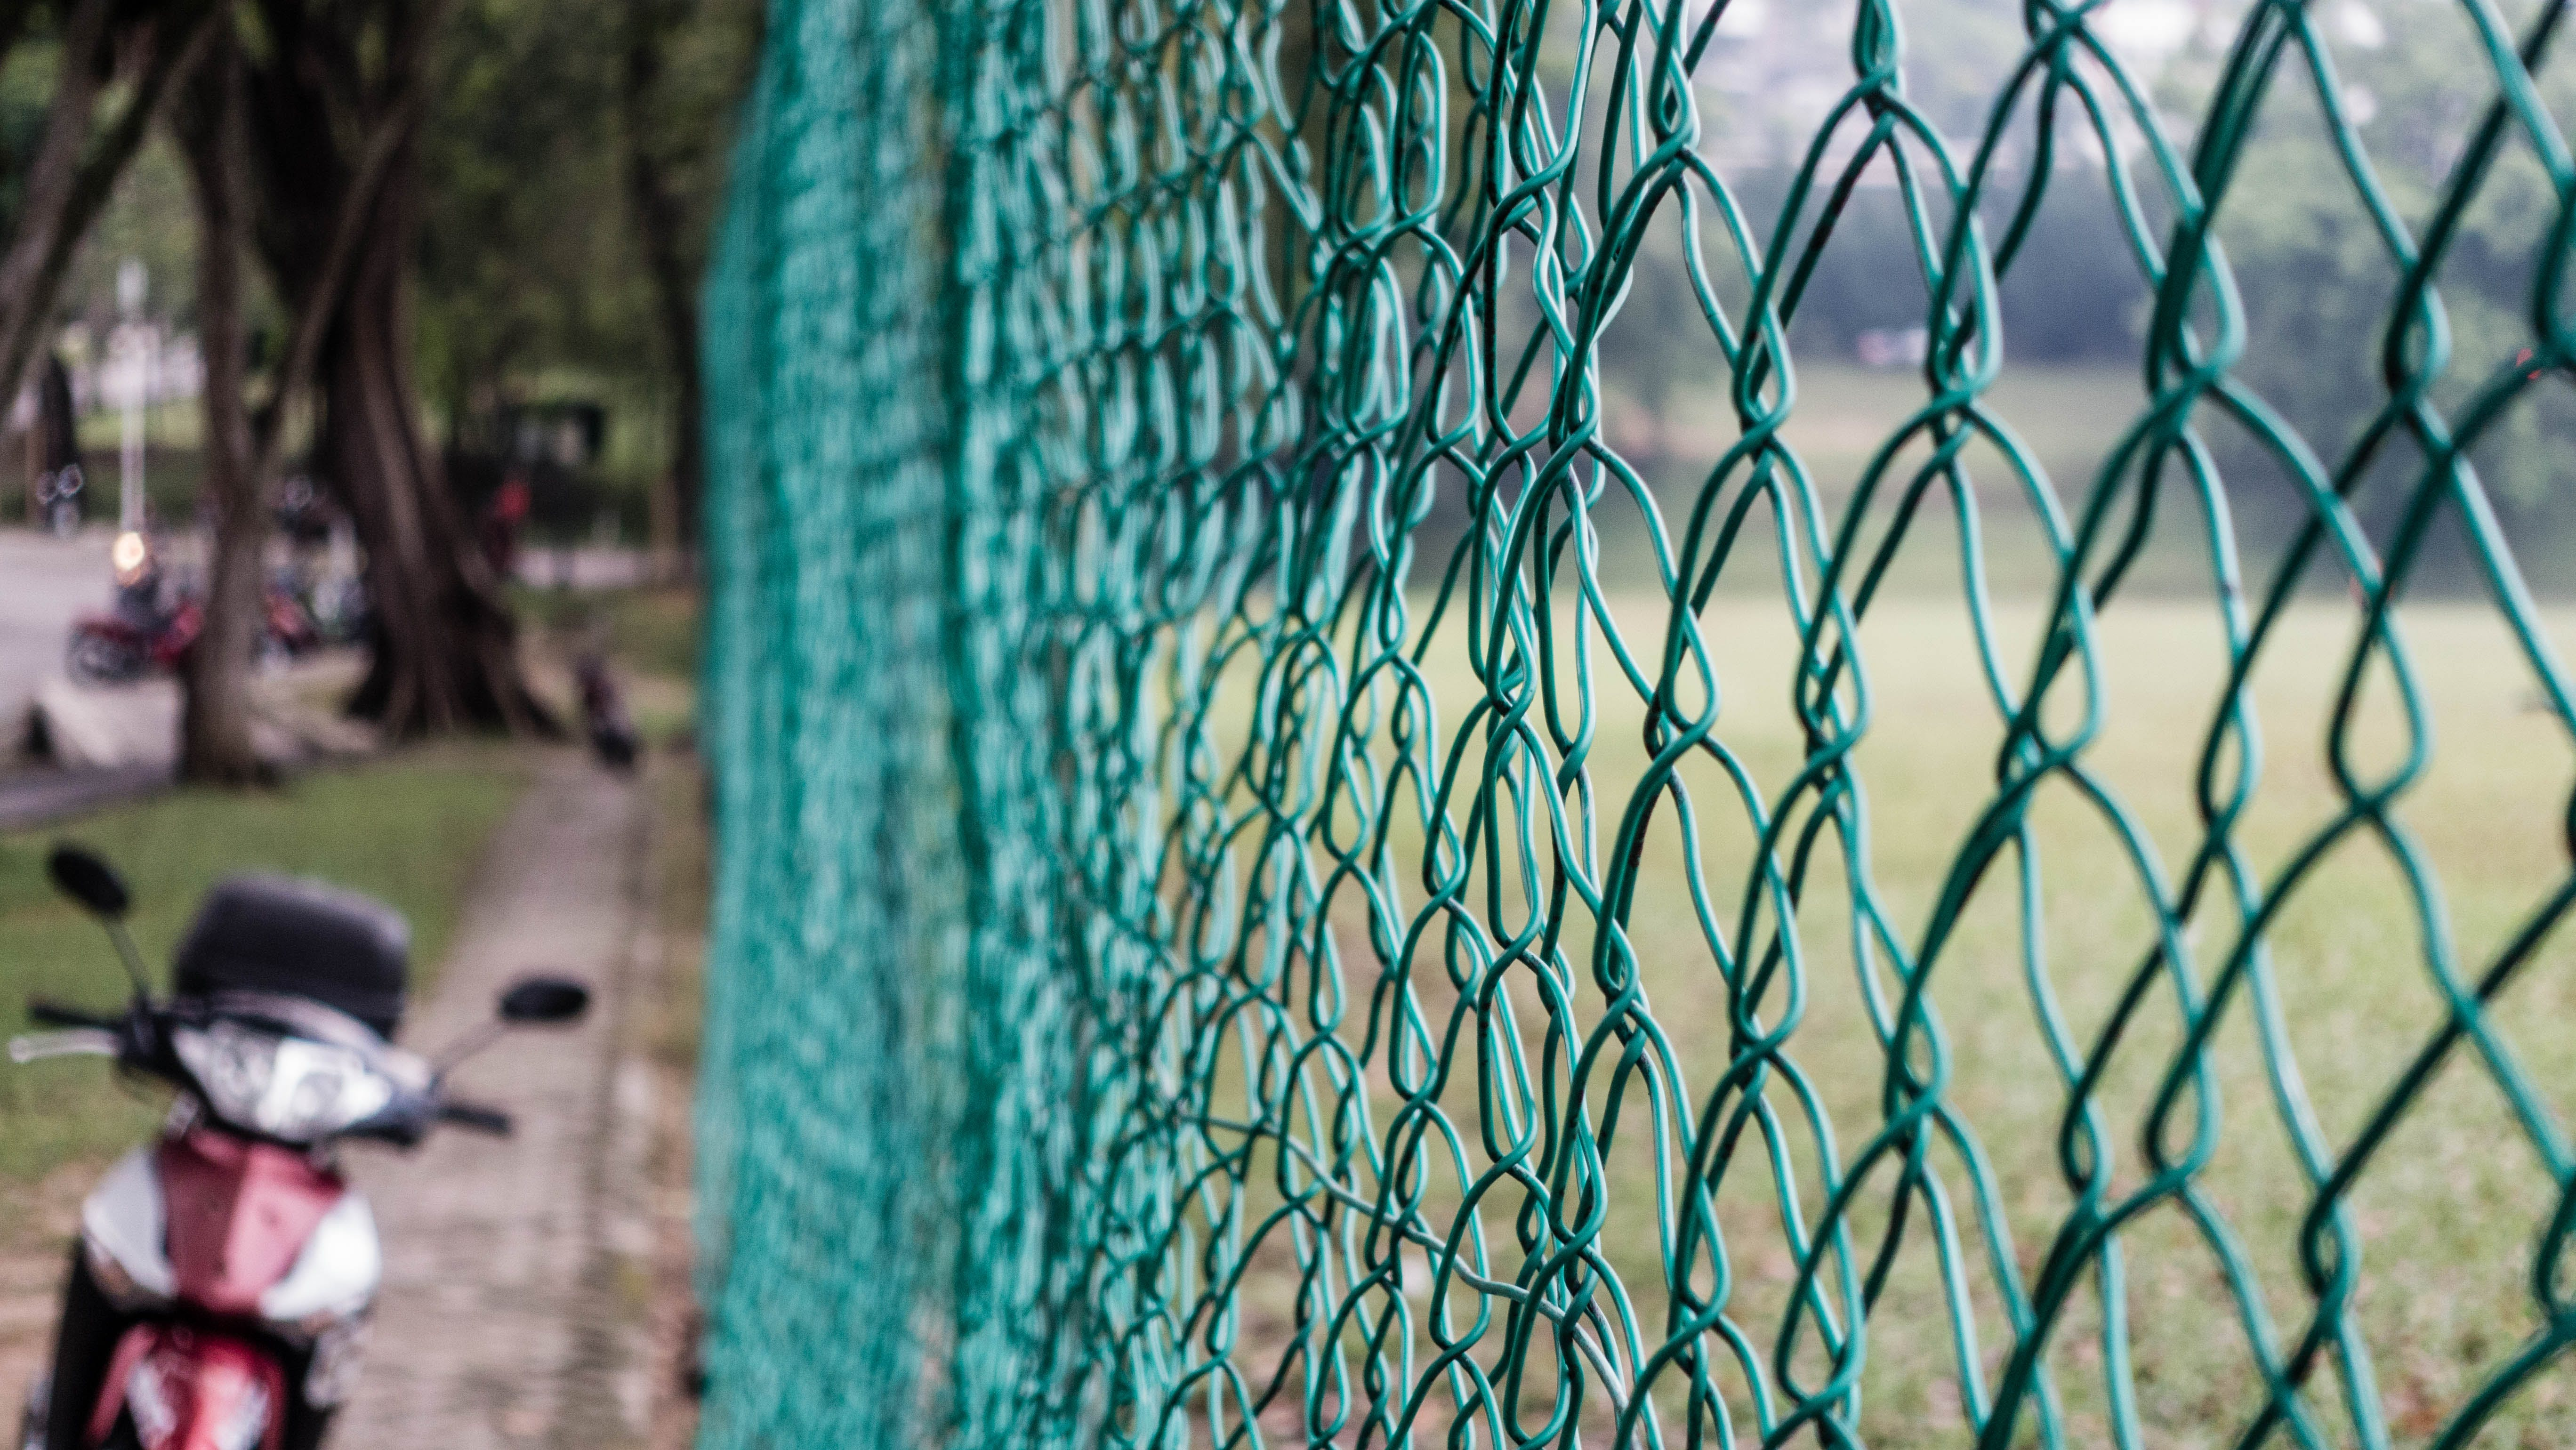 Green Cyclone Chain Fence